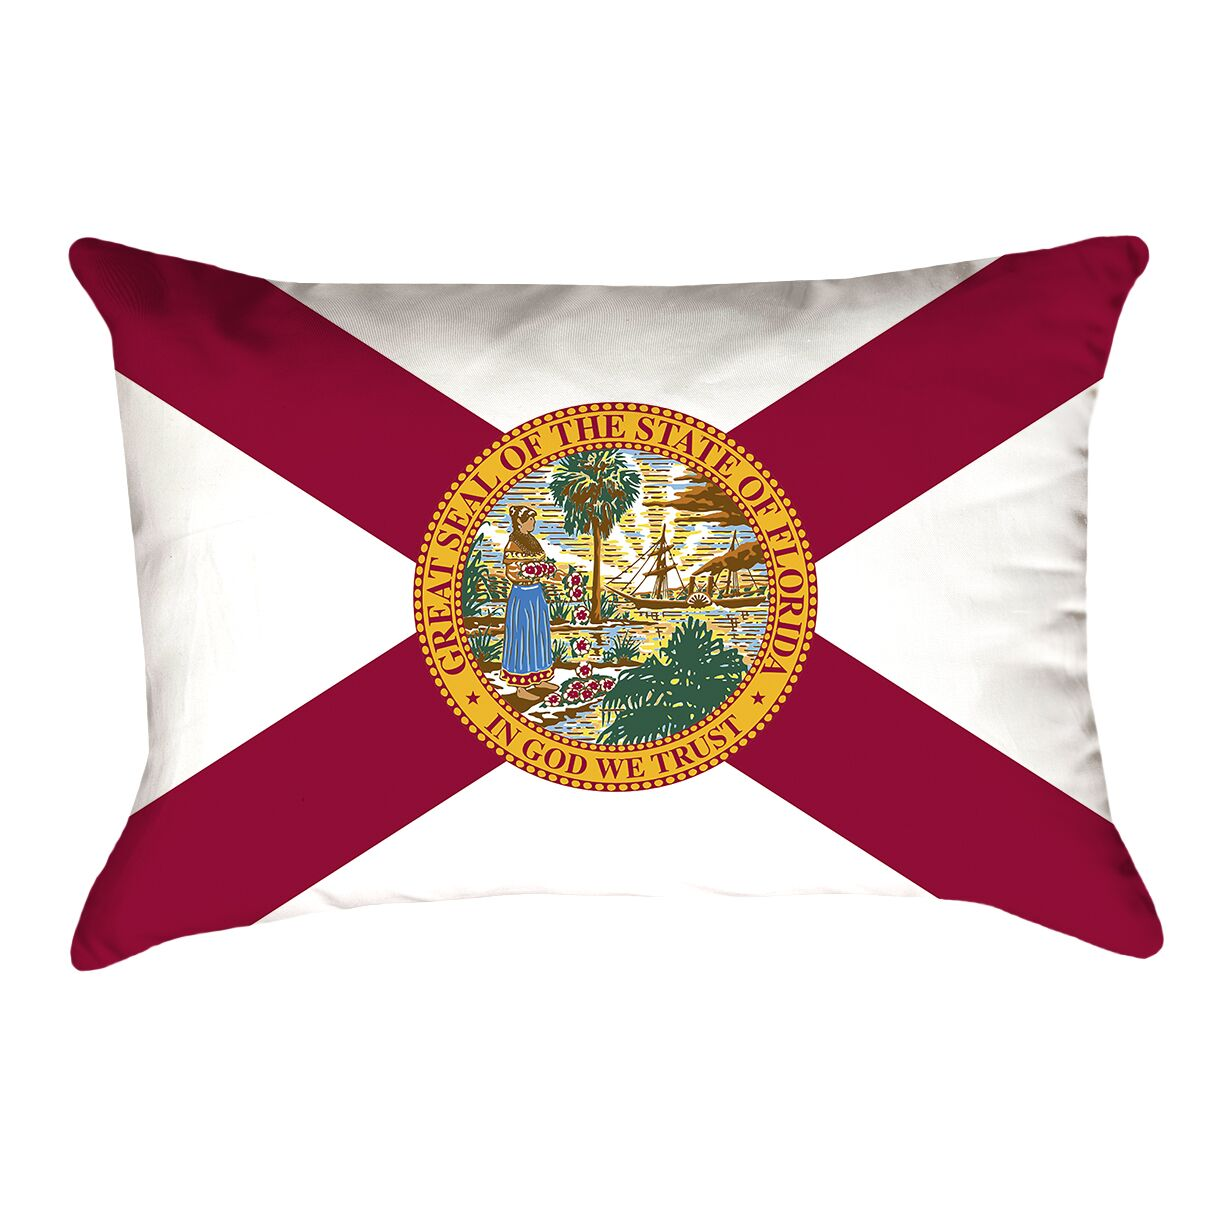 Centers Florida Flag Lumbar Pillow Material/Product Type: Faux Suede Double Sided Print/Pillow Cover